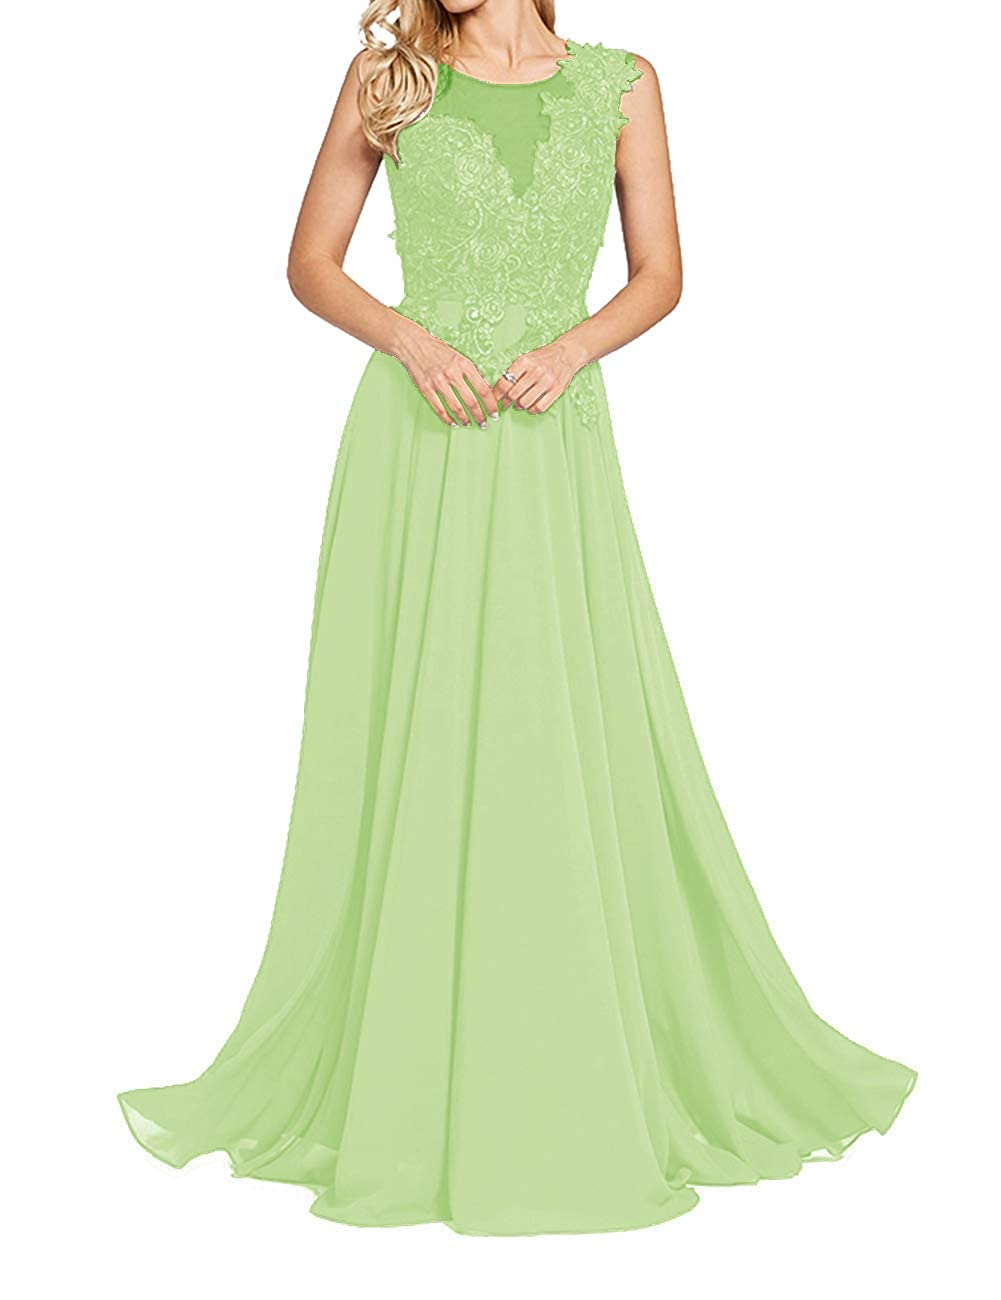 Sage Green Uther Formal Evening Prom Dresses Long Appliques Bridesmaid Dress for Women Sleeveless